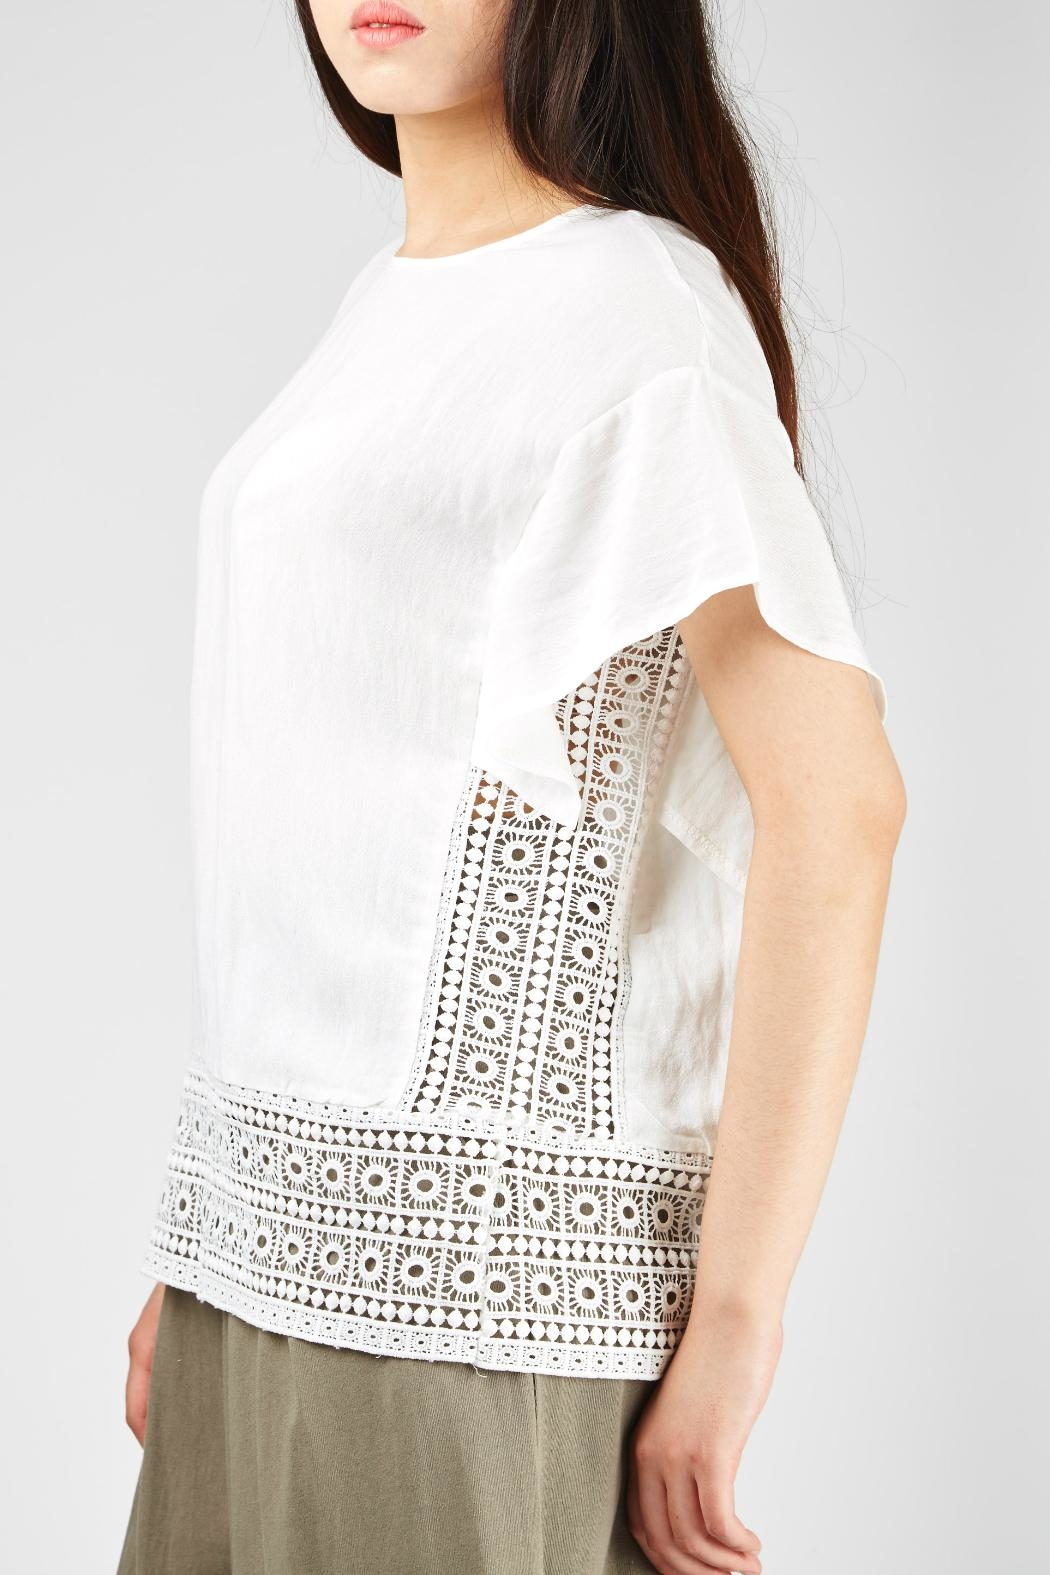 6d2e4f1c19f37f Yuki Tokyo Square Lace Blouses from Crouch End by Scarecrow Boutique ...